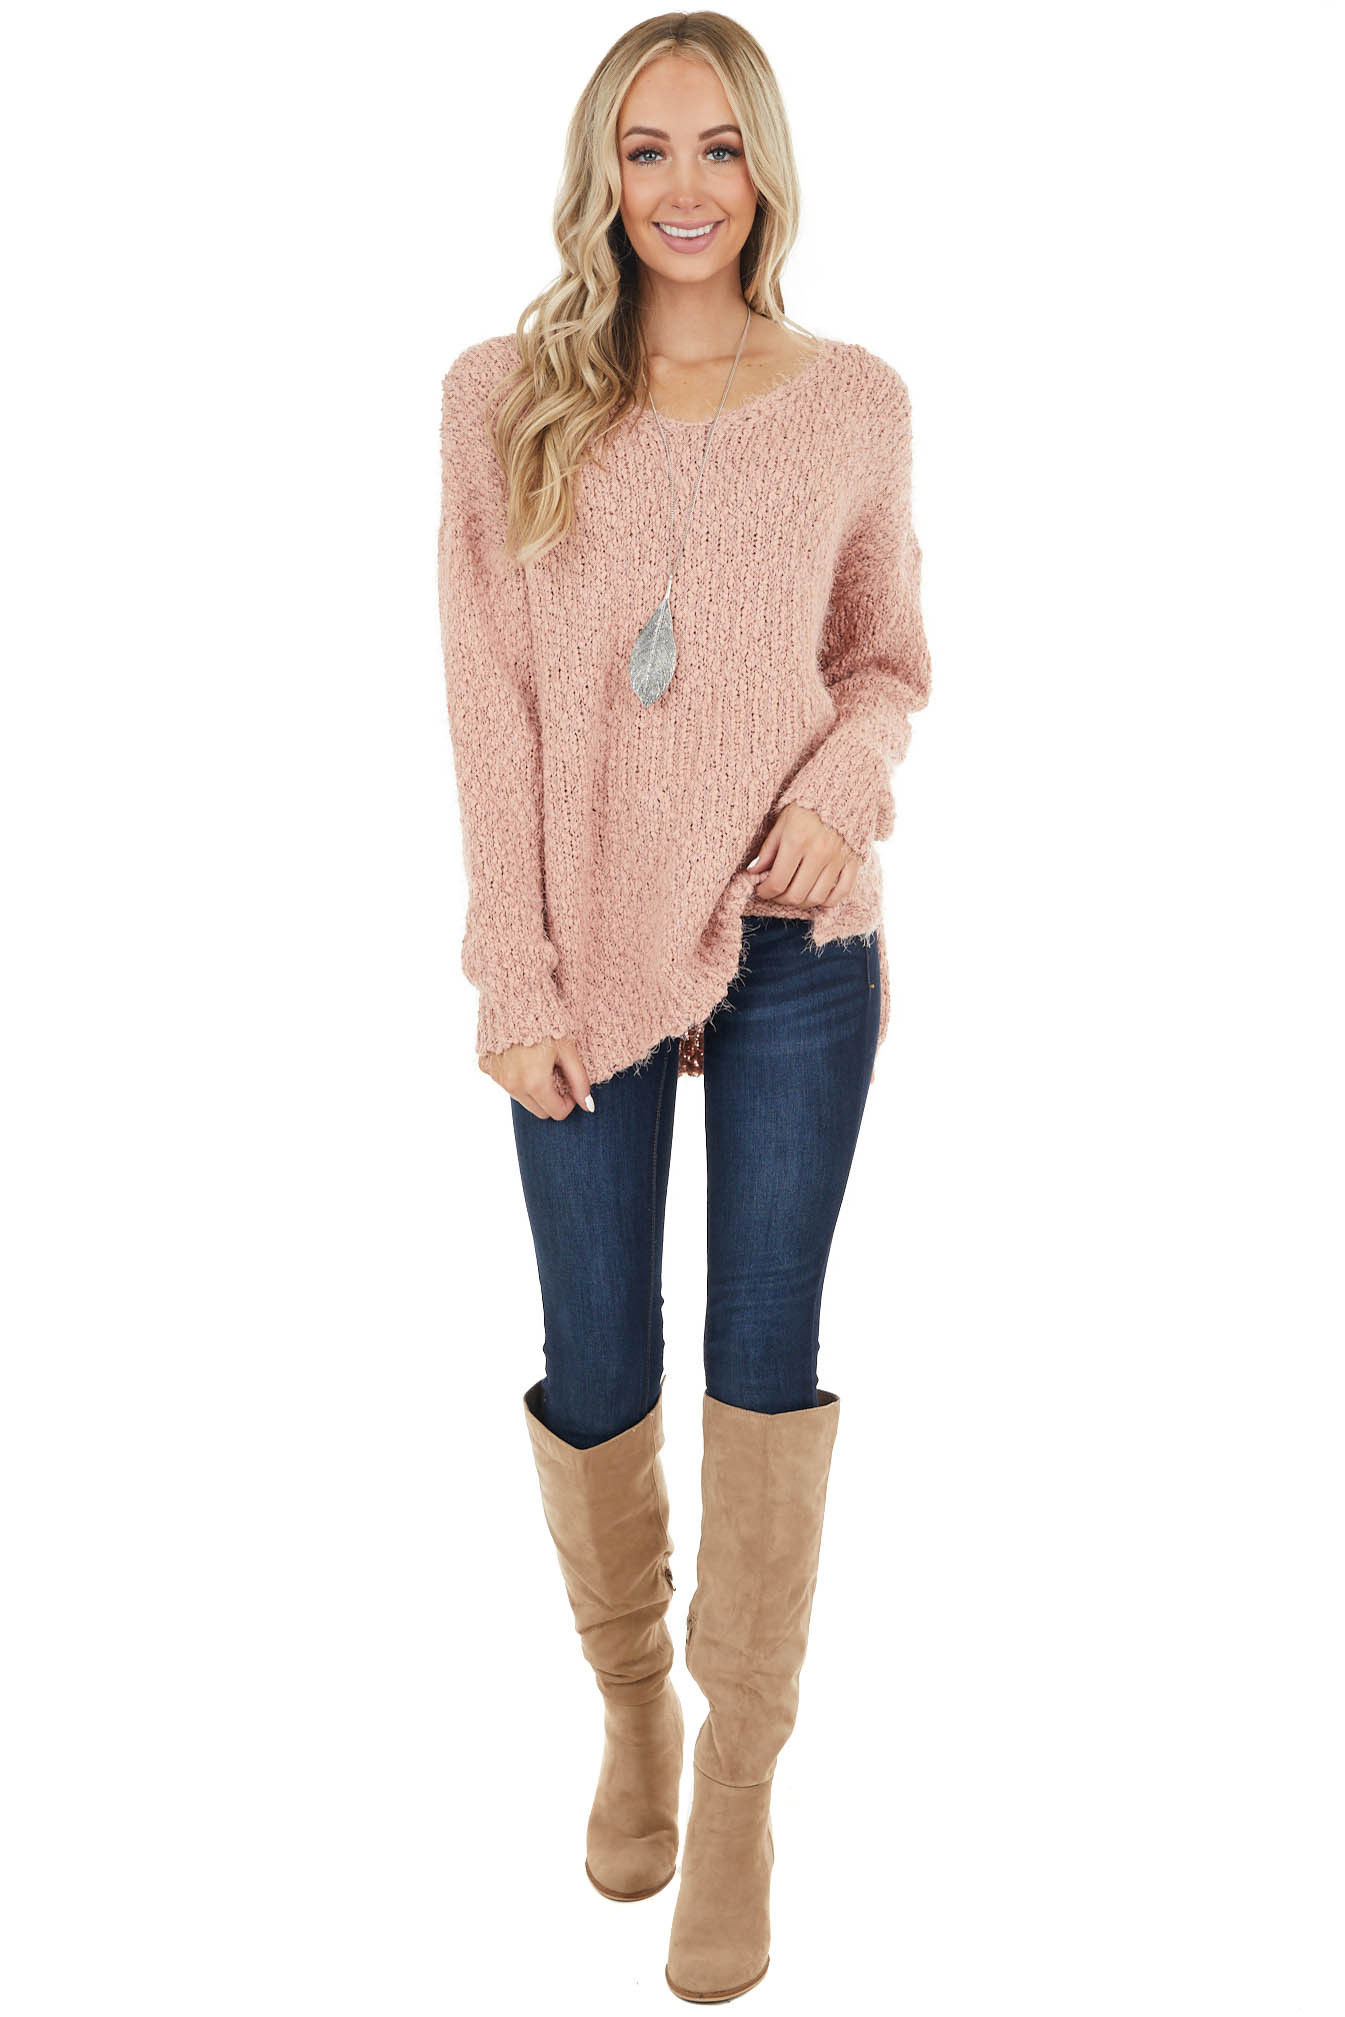 Peach Oversized Fuzzy Sweater with Drop Shoulder Sleeves